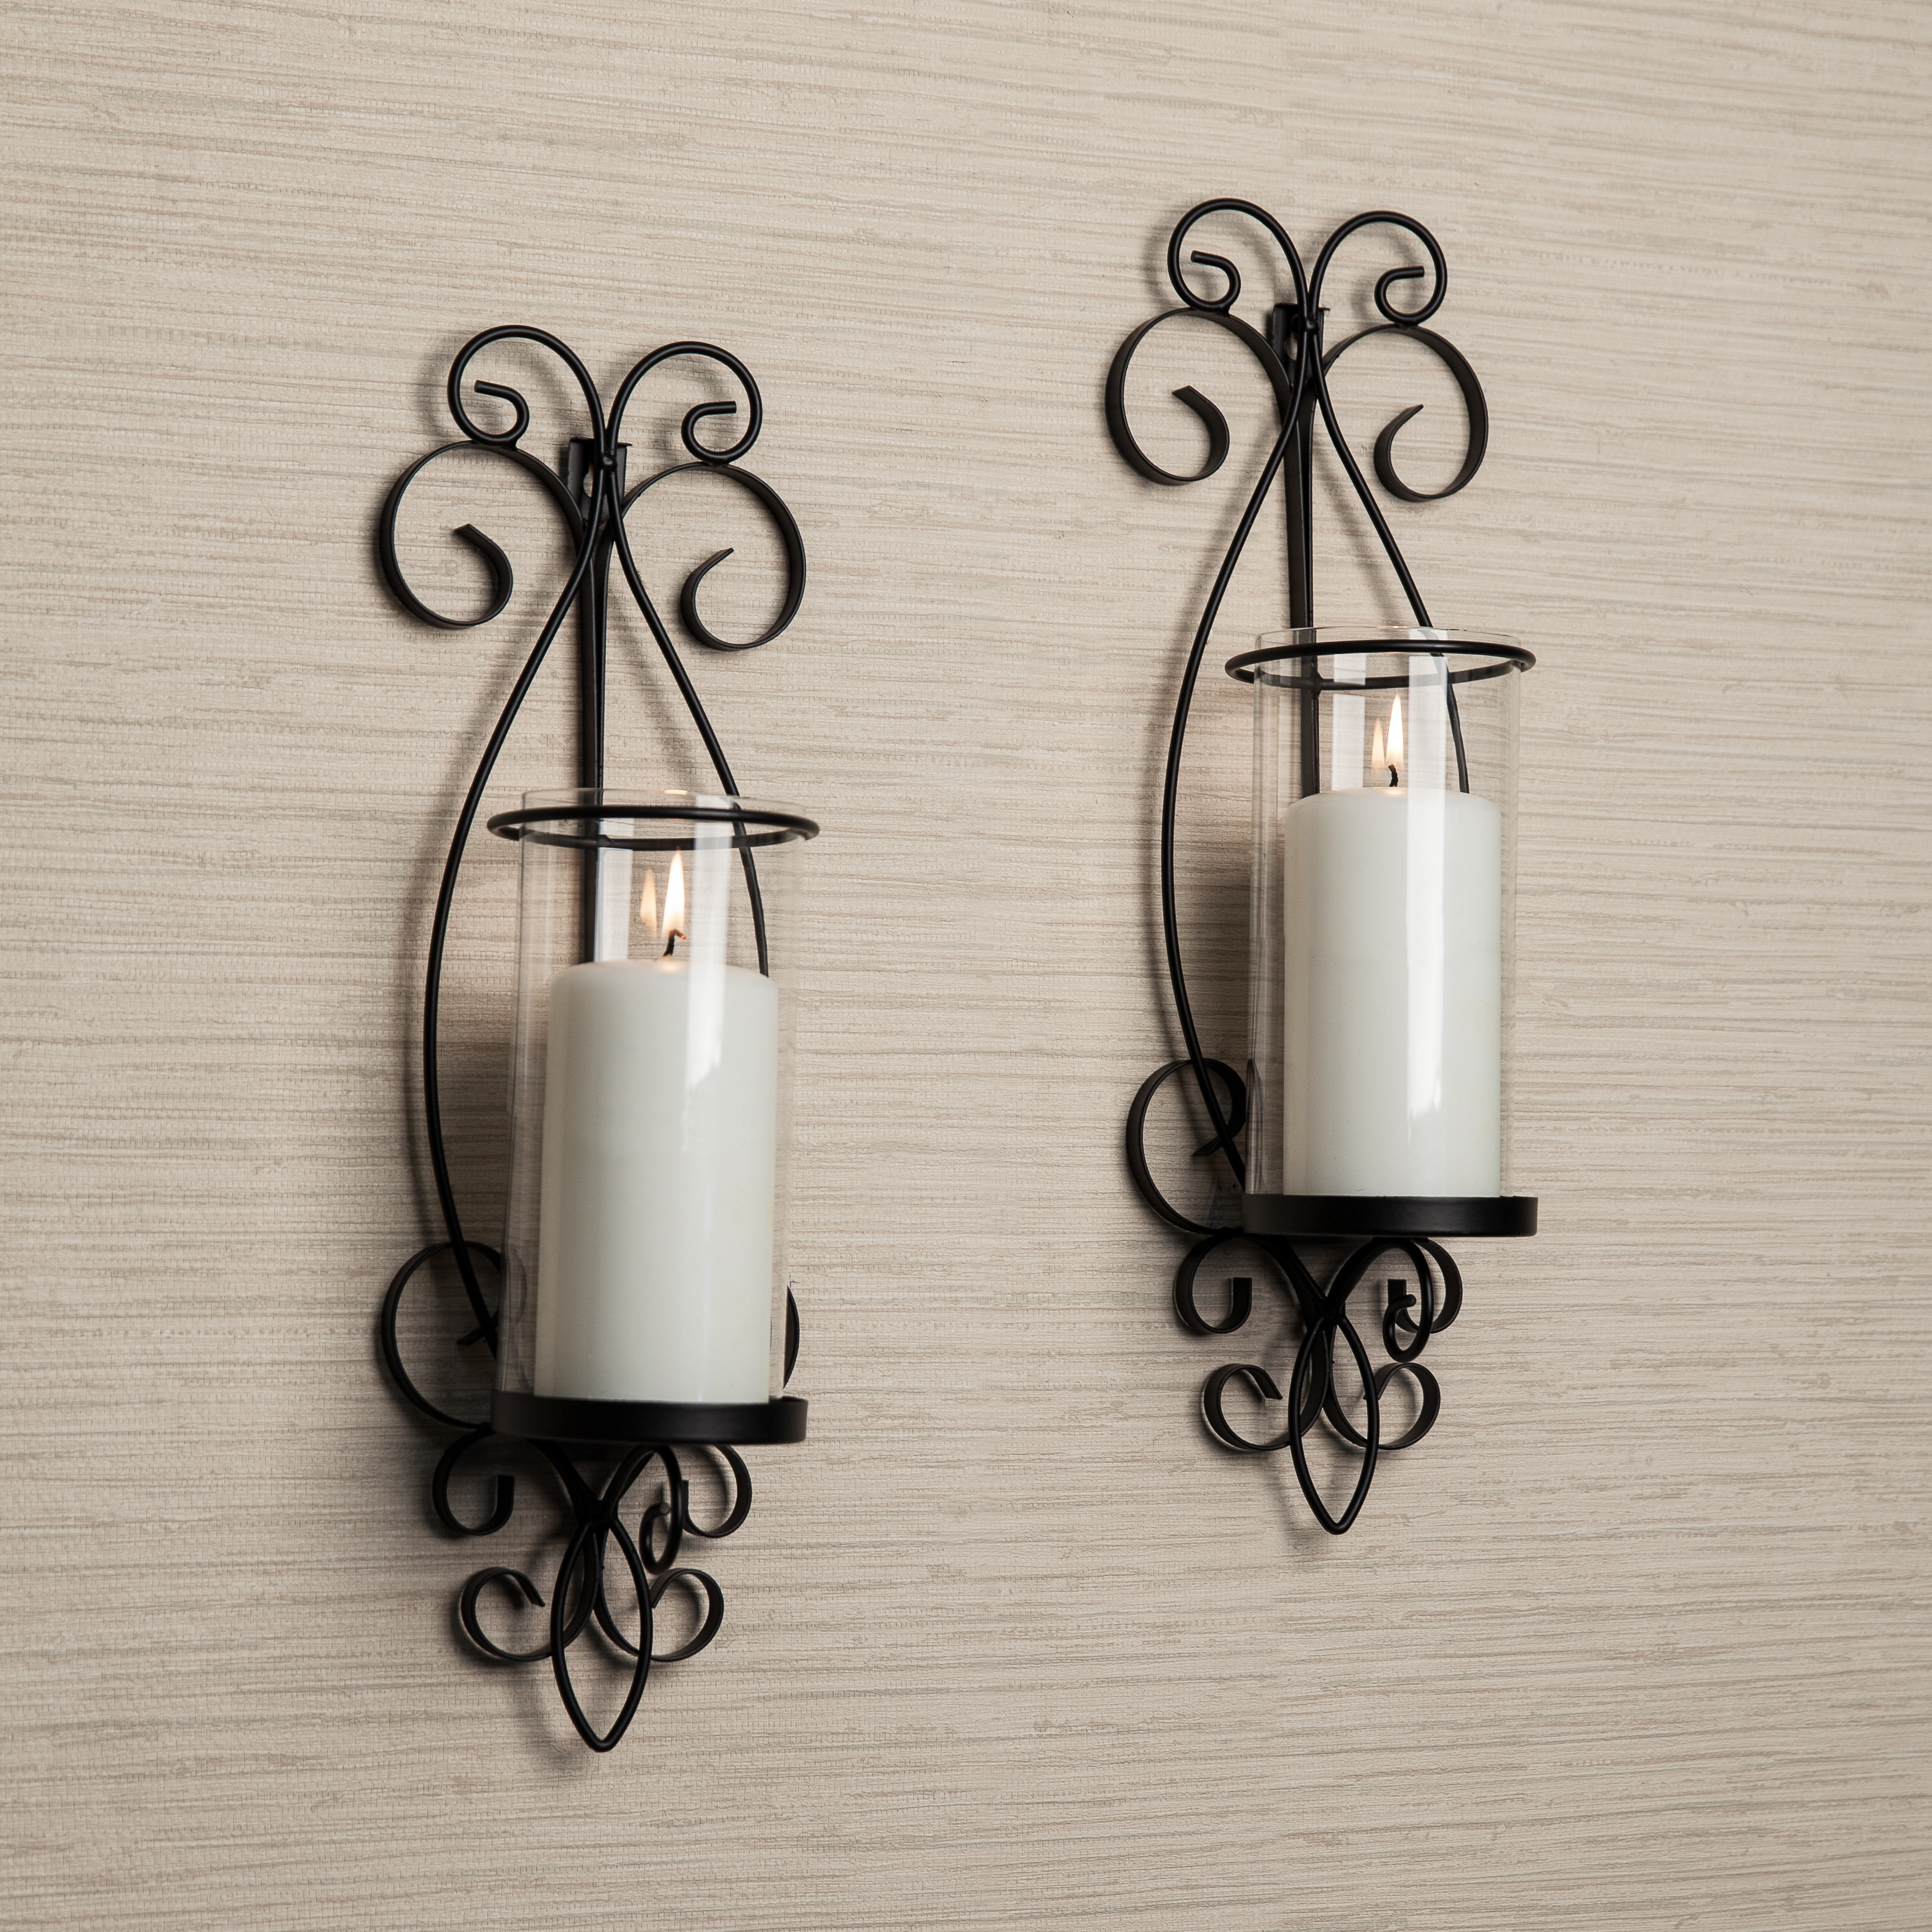 garden wall sconce free metal product glass round and iron home overstock shipping today